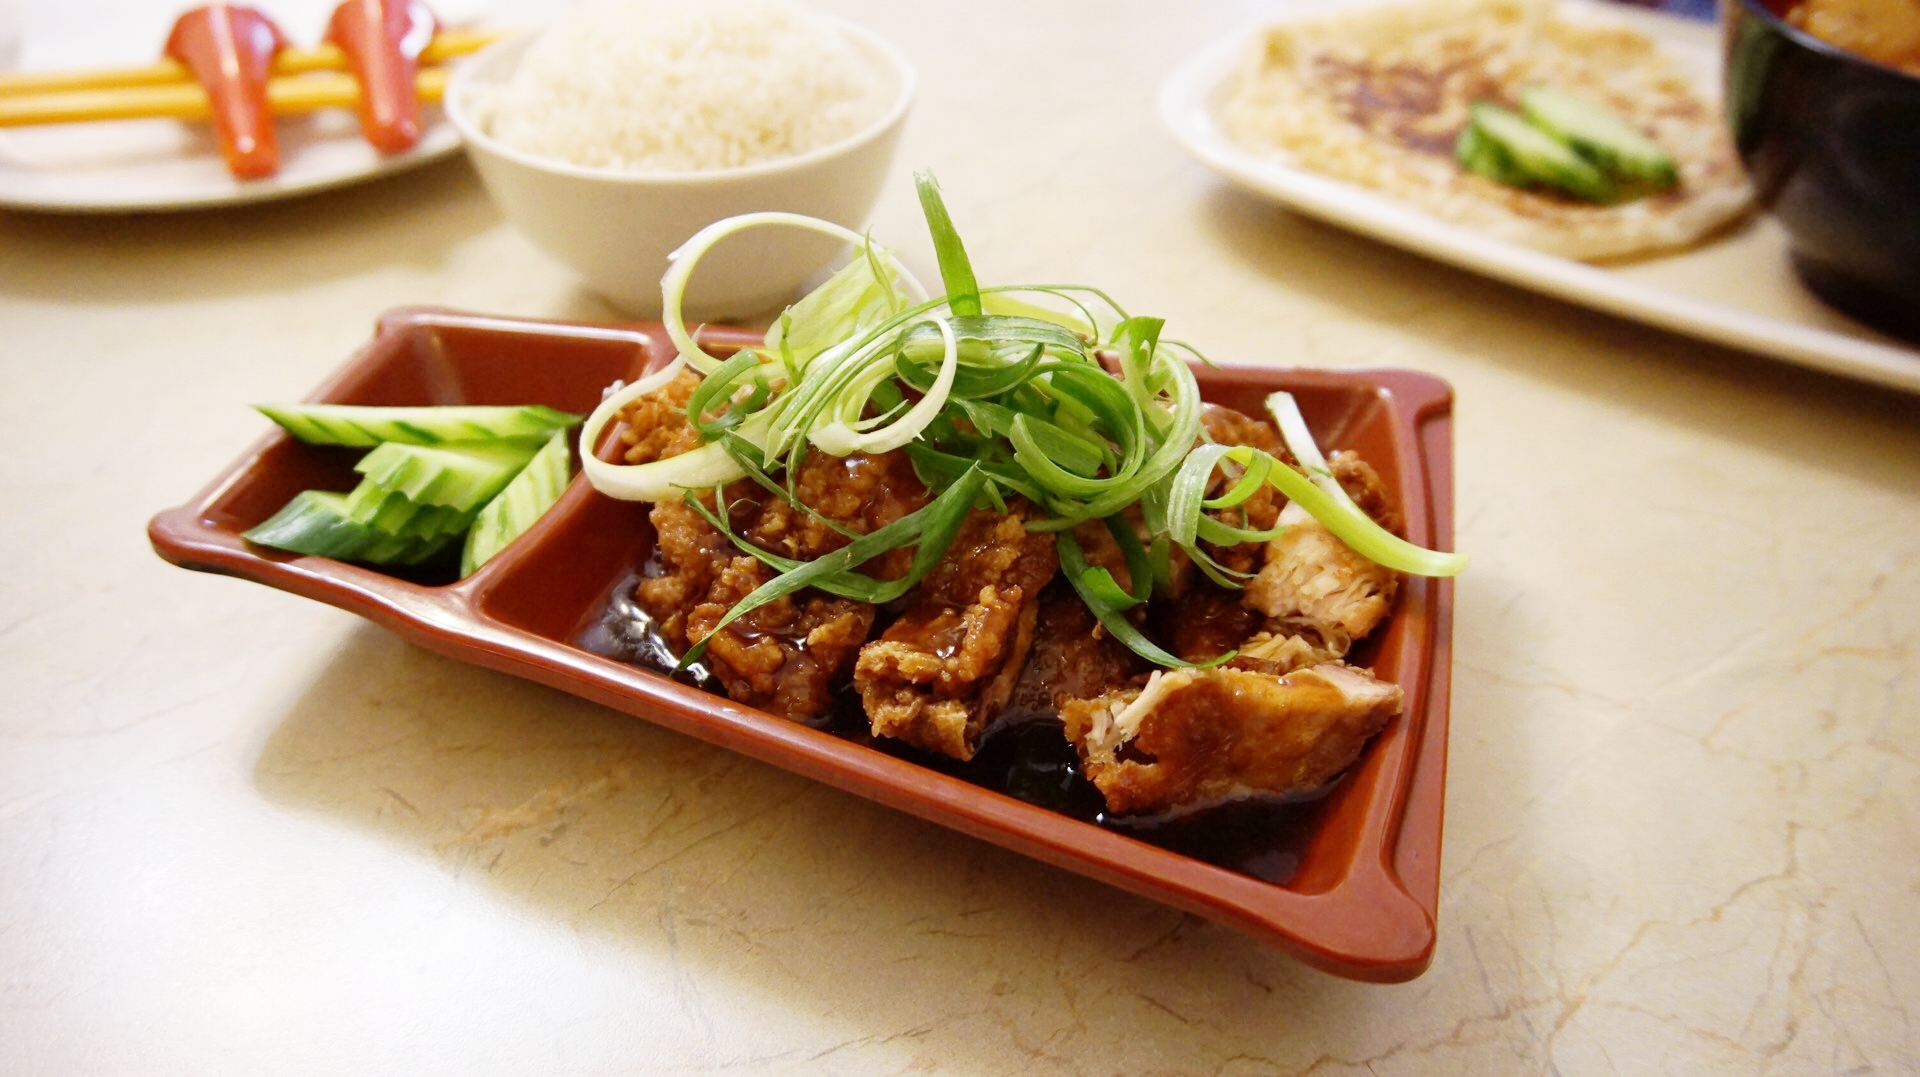 Tak Chee's - Pan Fried Garlic Chicken